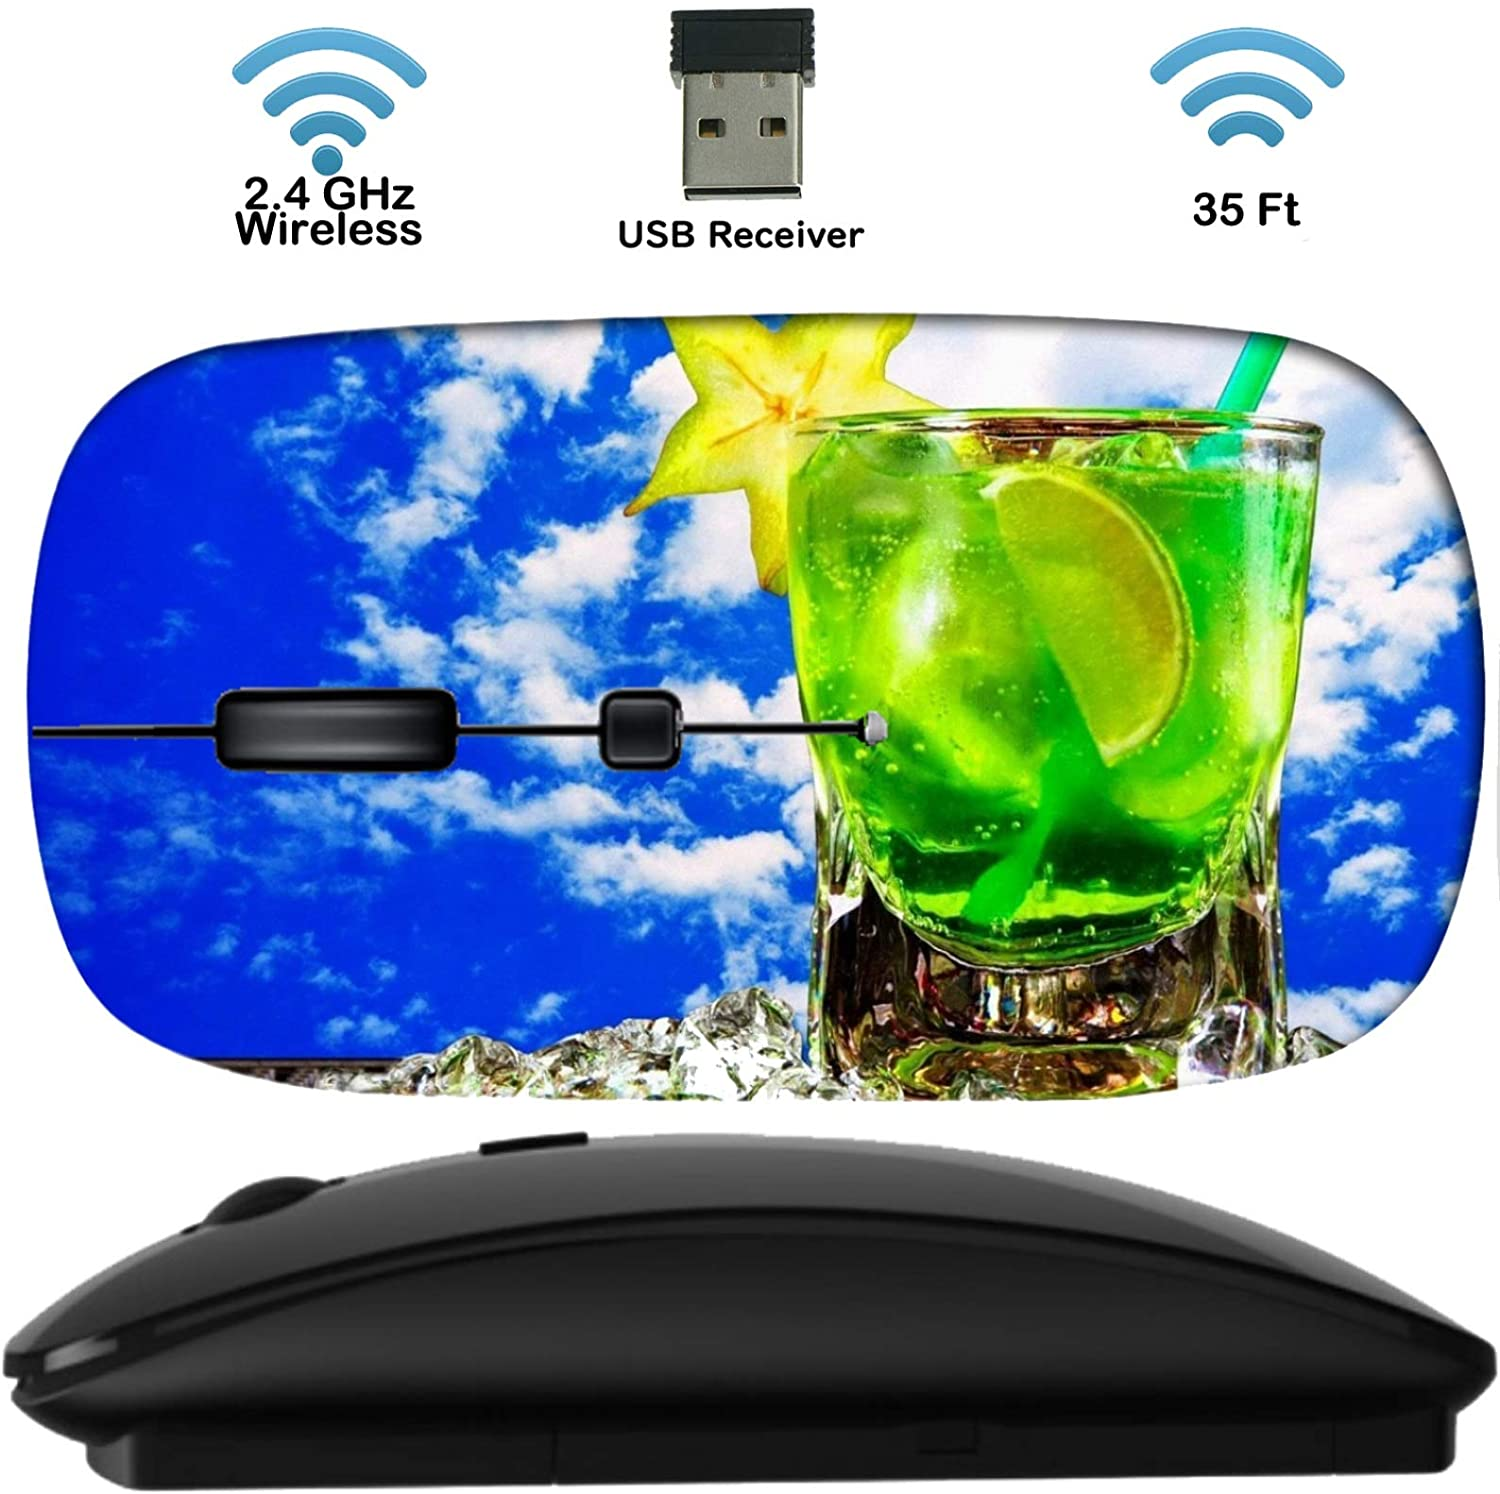 Wireless Mouse Computer Mice Black Base 2.4G with USB Receiver, Cordless Portable and Silent Click with 1000 DPI for Notebook PC Laptop Computer MacBook Image of Cocktail ice Cold Drink Glass Alcohol